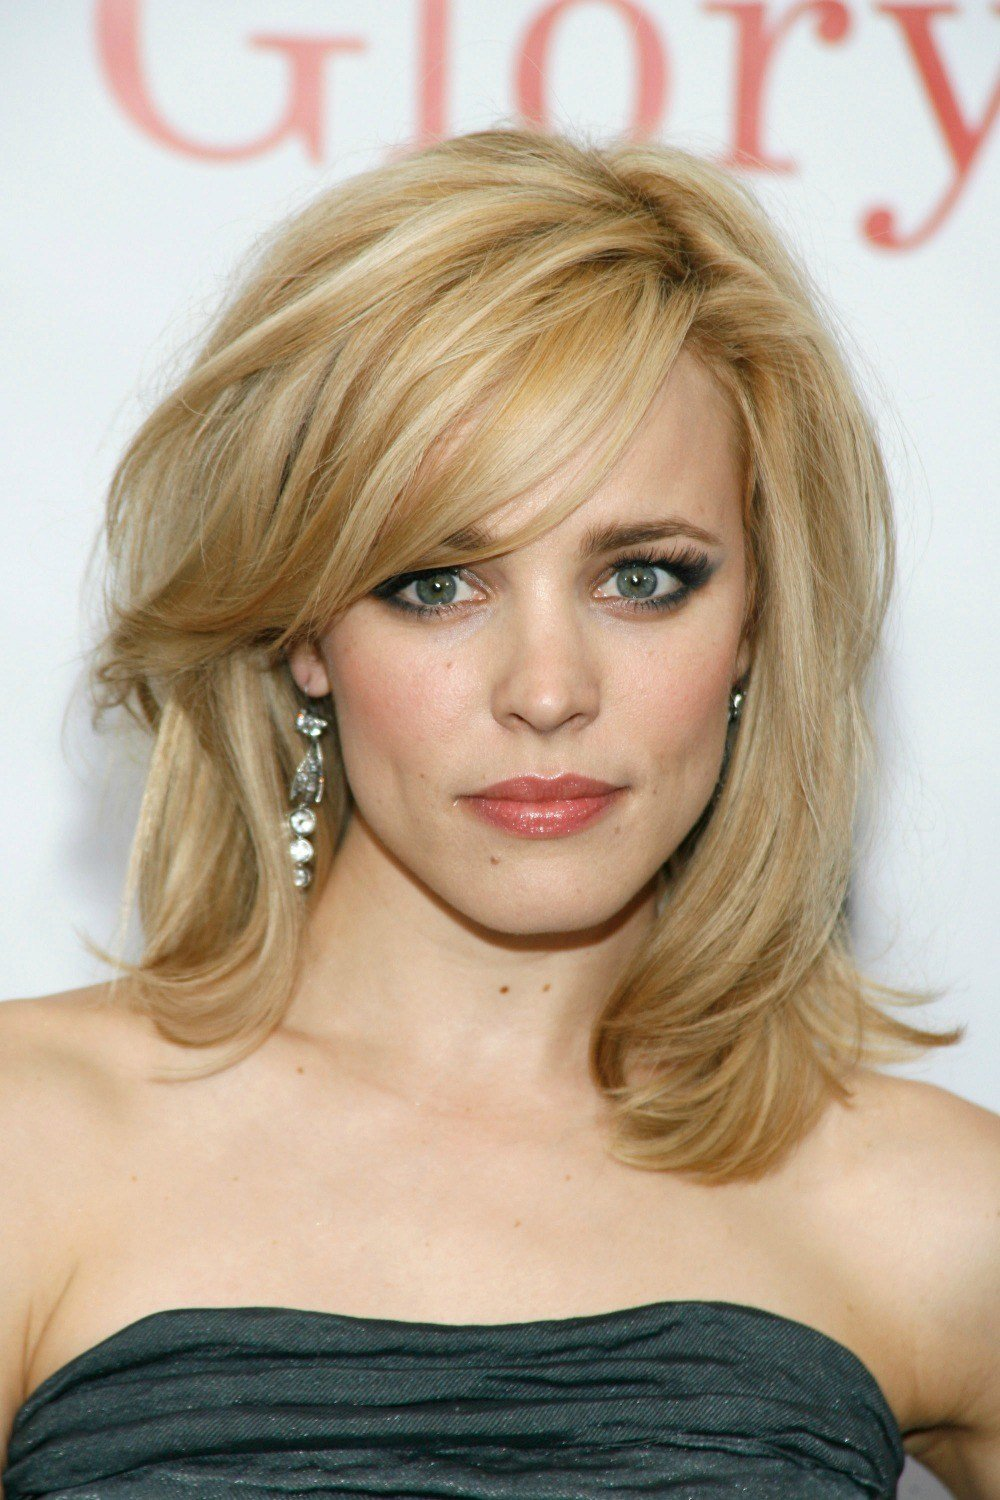 New 25 Medium Length Hairstyles You Ll Want To Copy Now Ideas With Pictures Original 1024 x 768